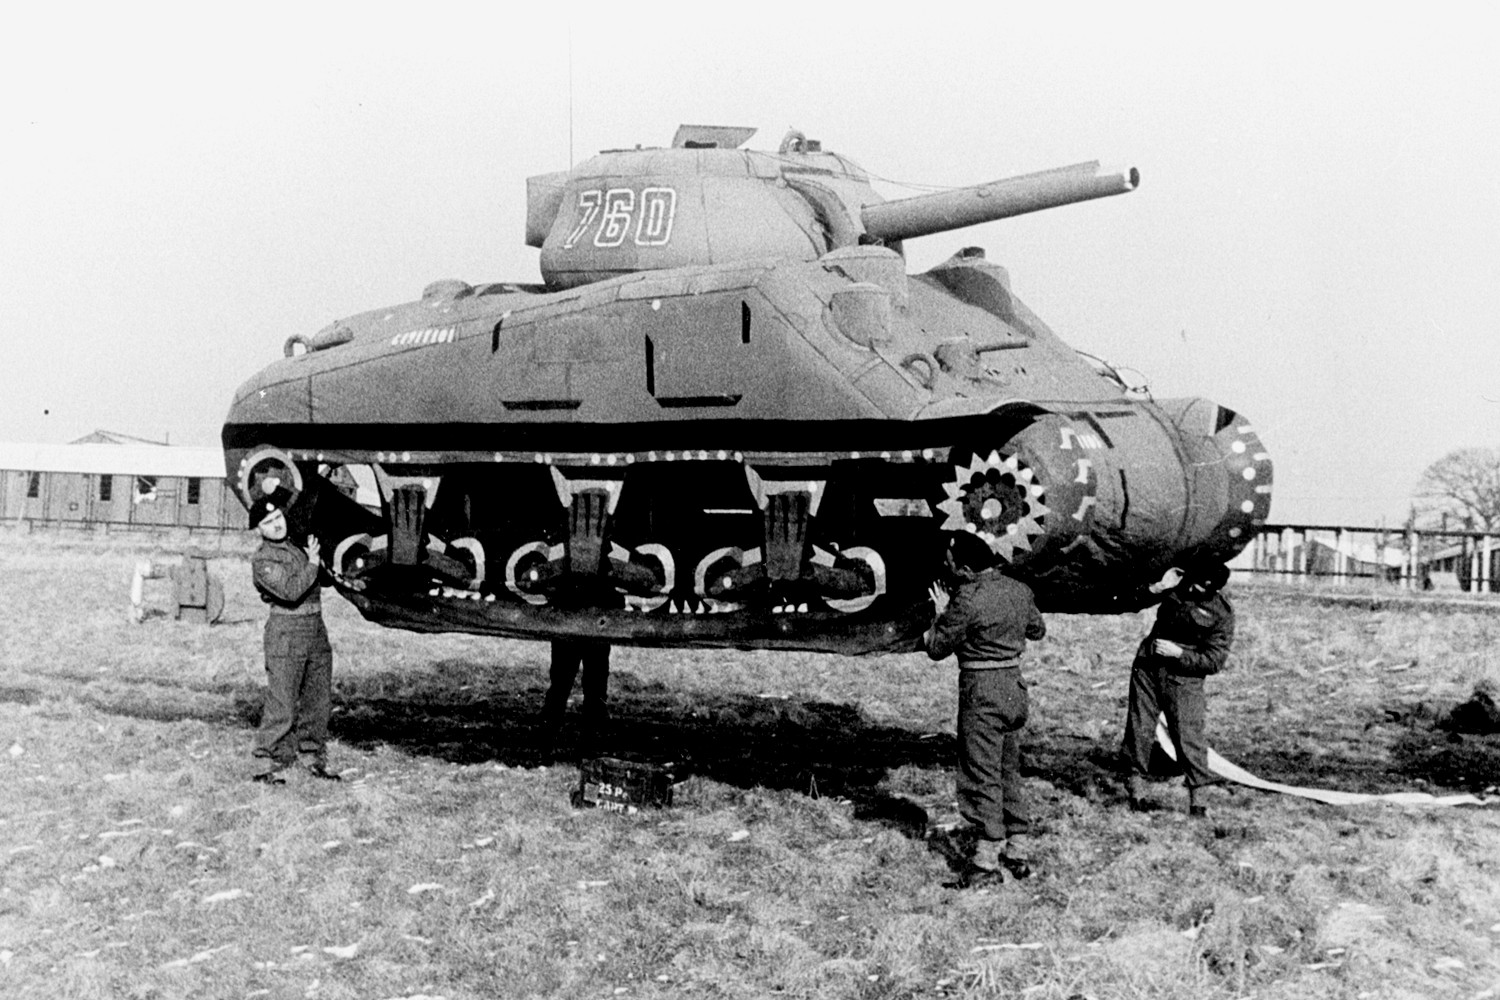 tank-gonflable-seconde-guerre-mondiale-01.jpg